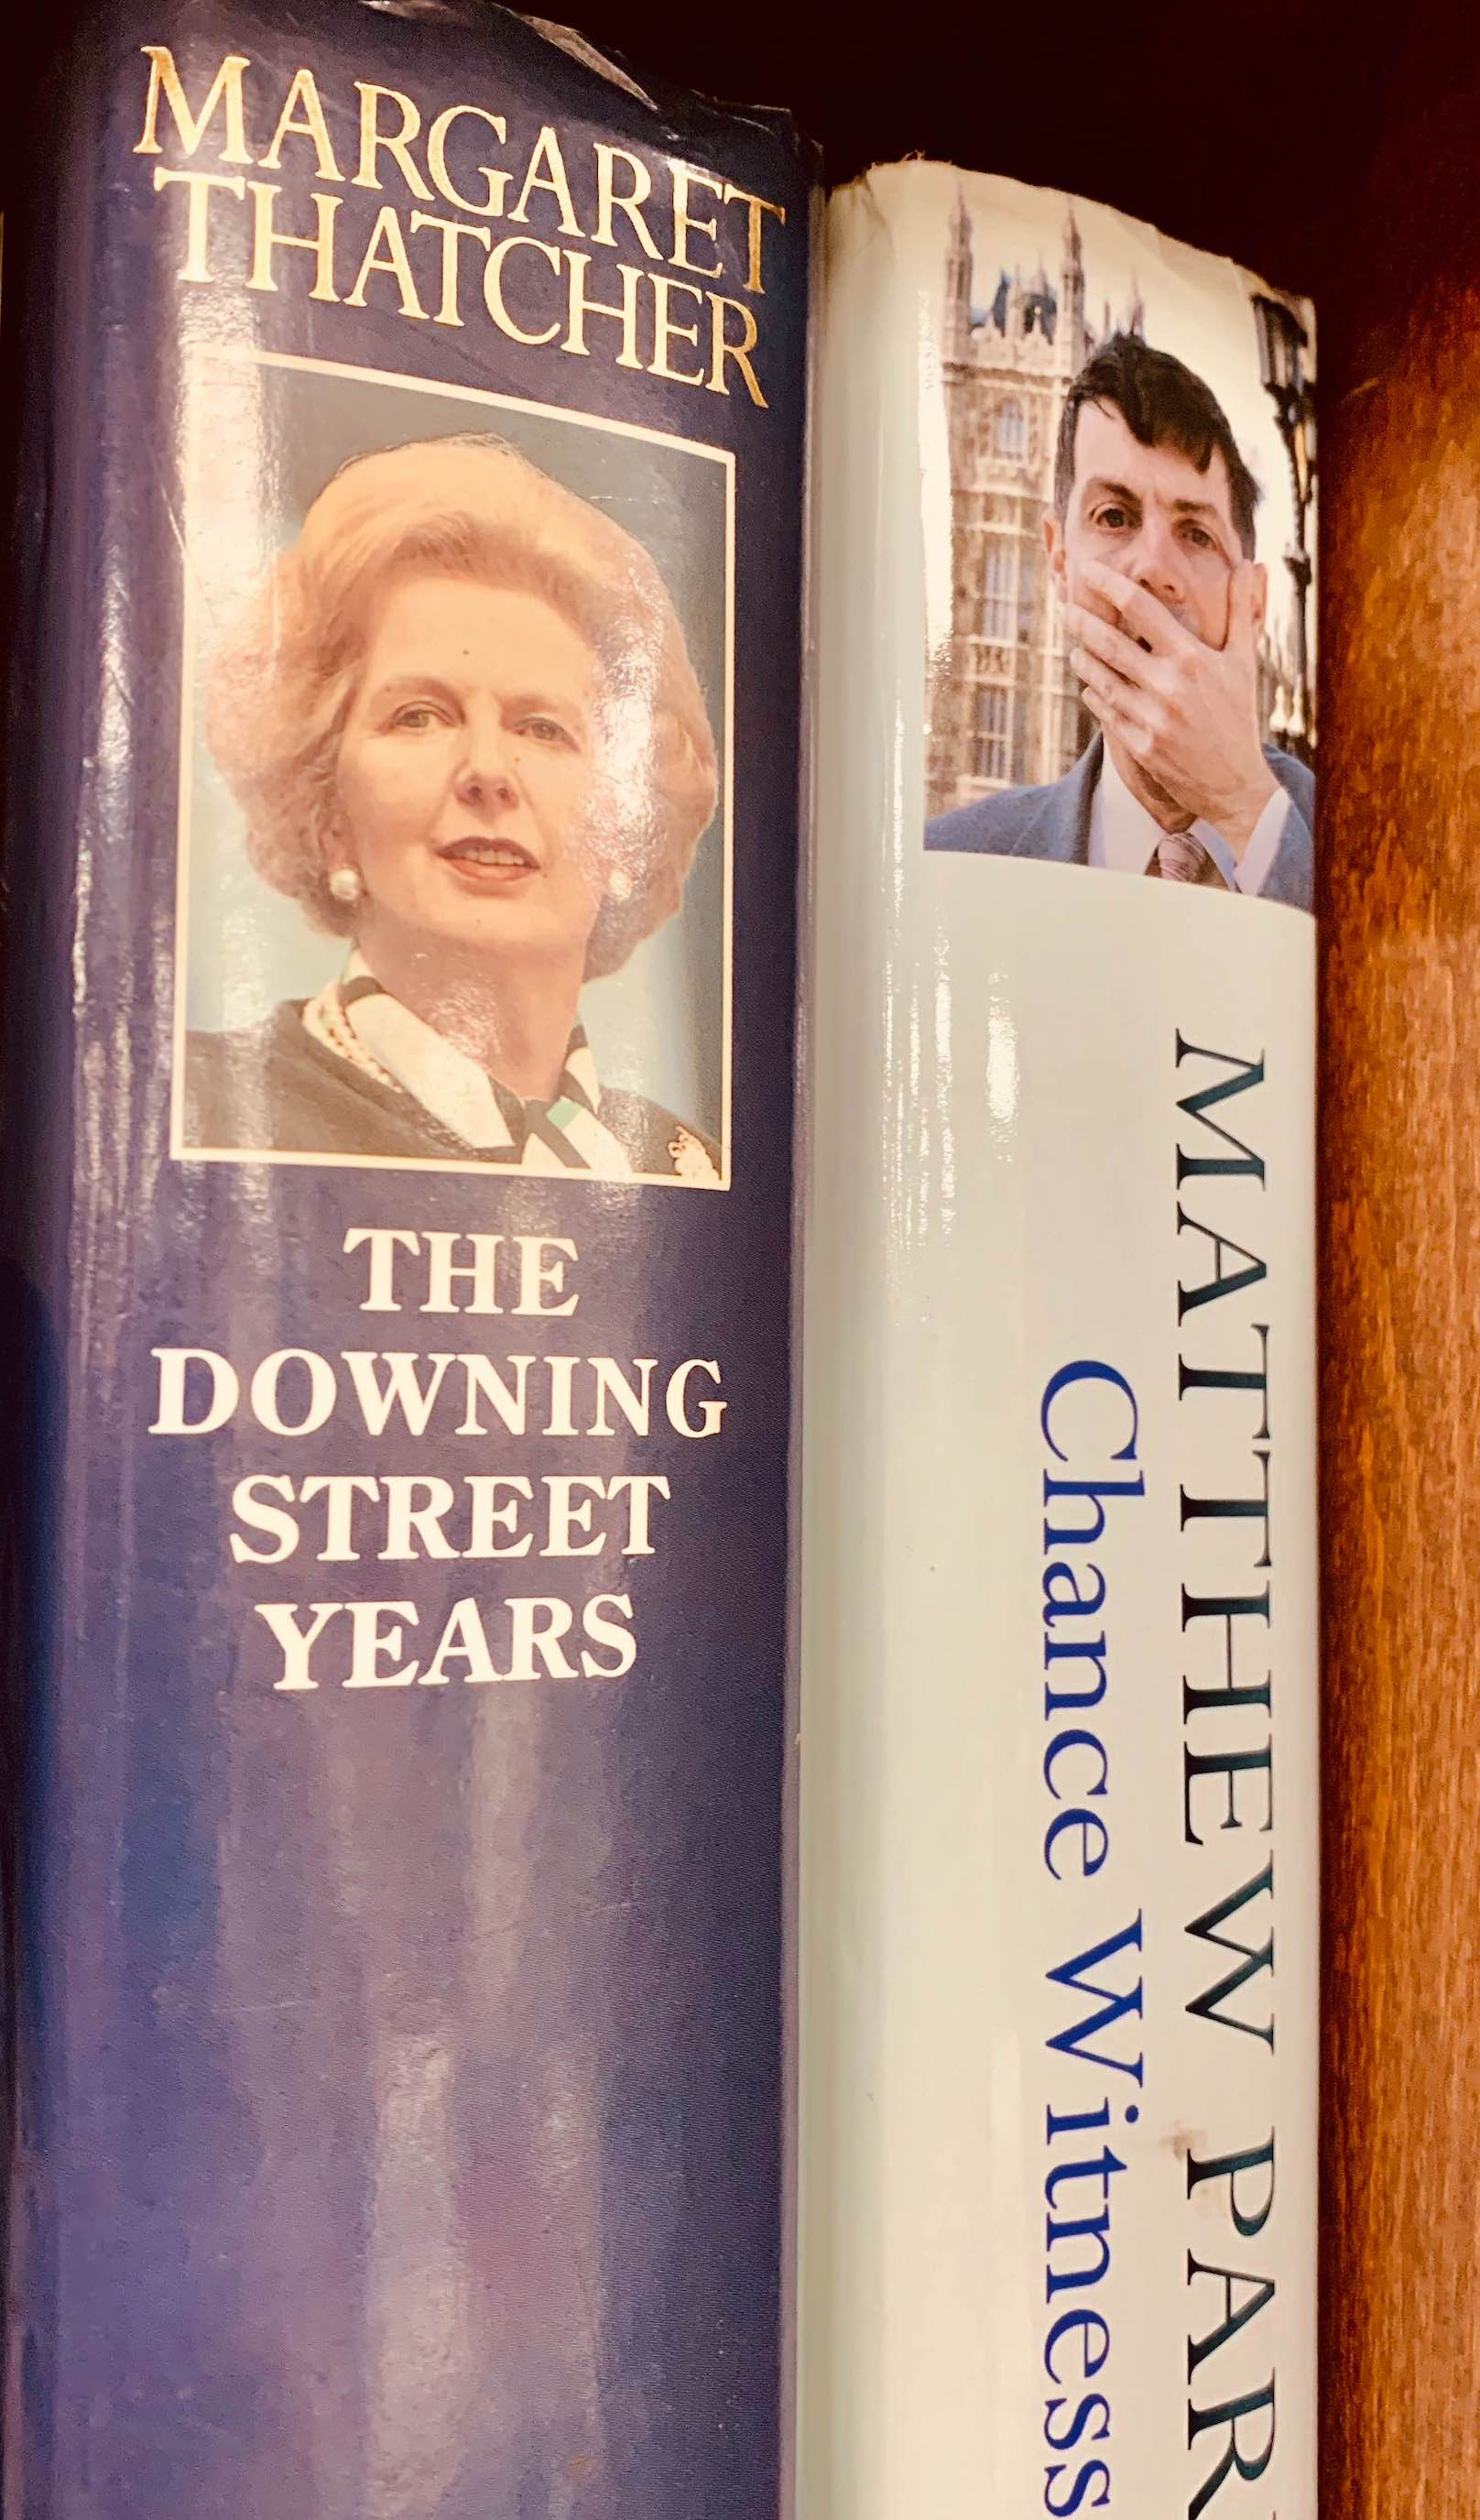 Margaret Thatcher the Downing Street Years